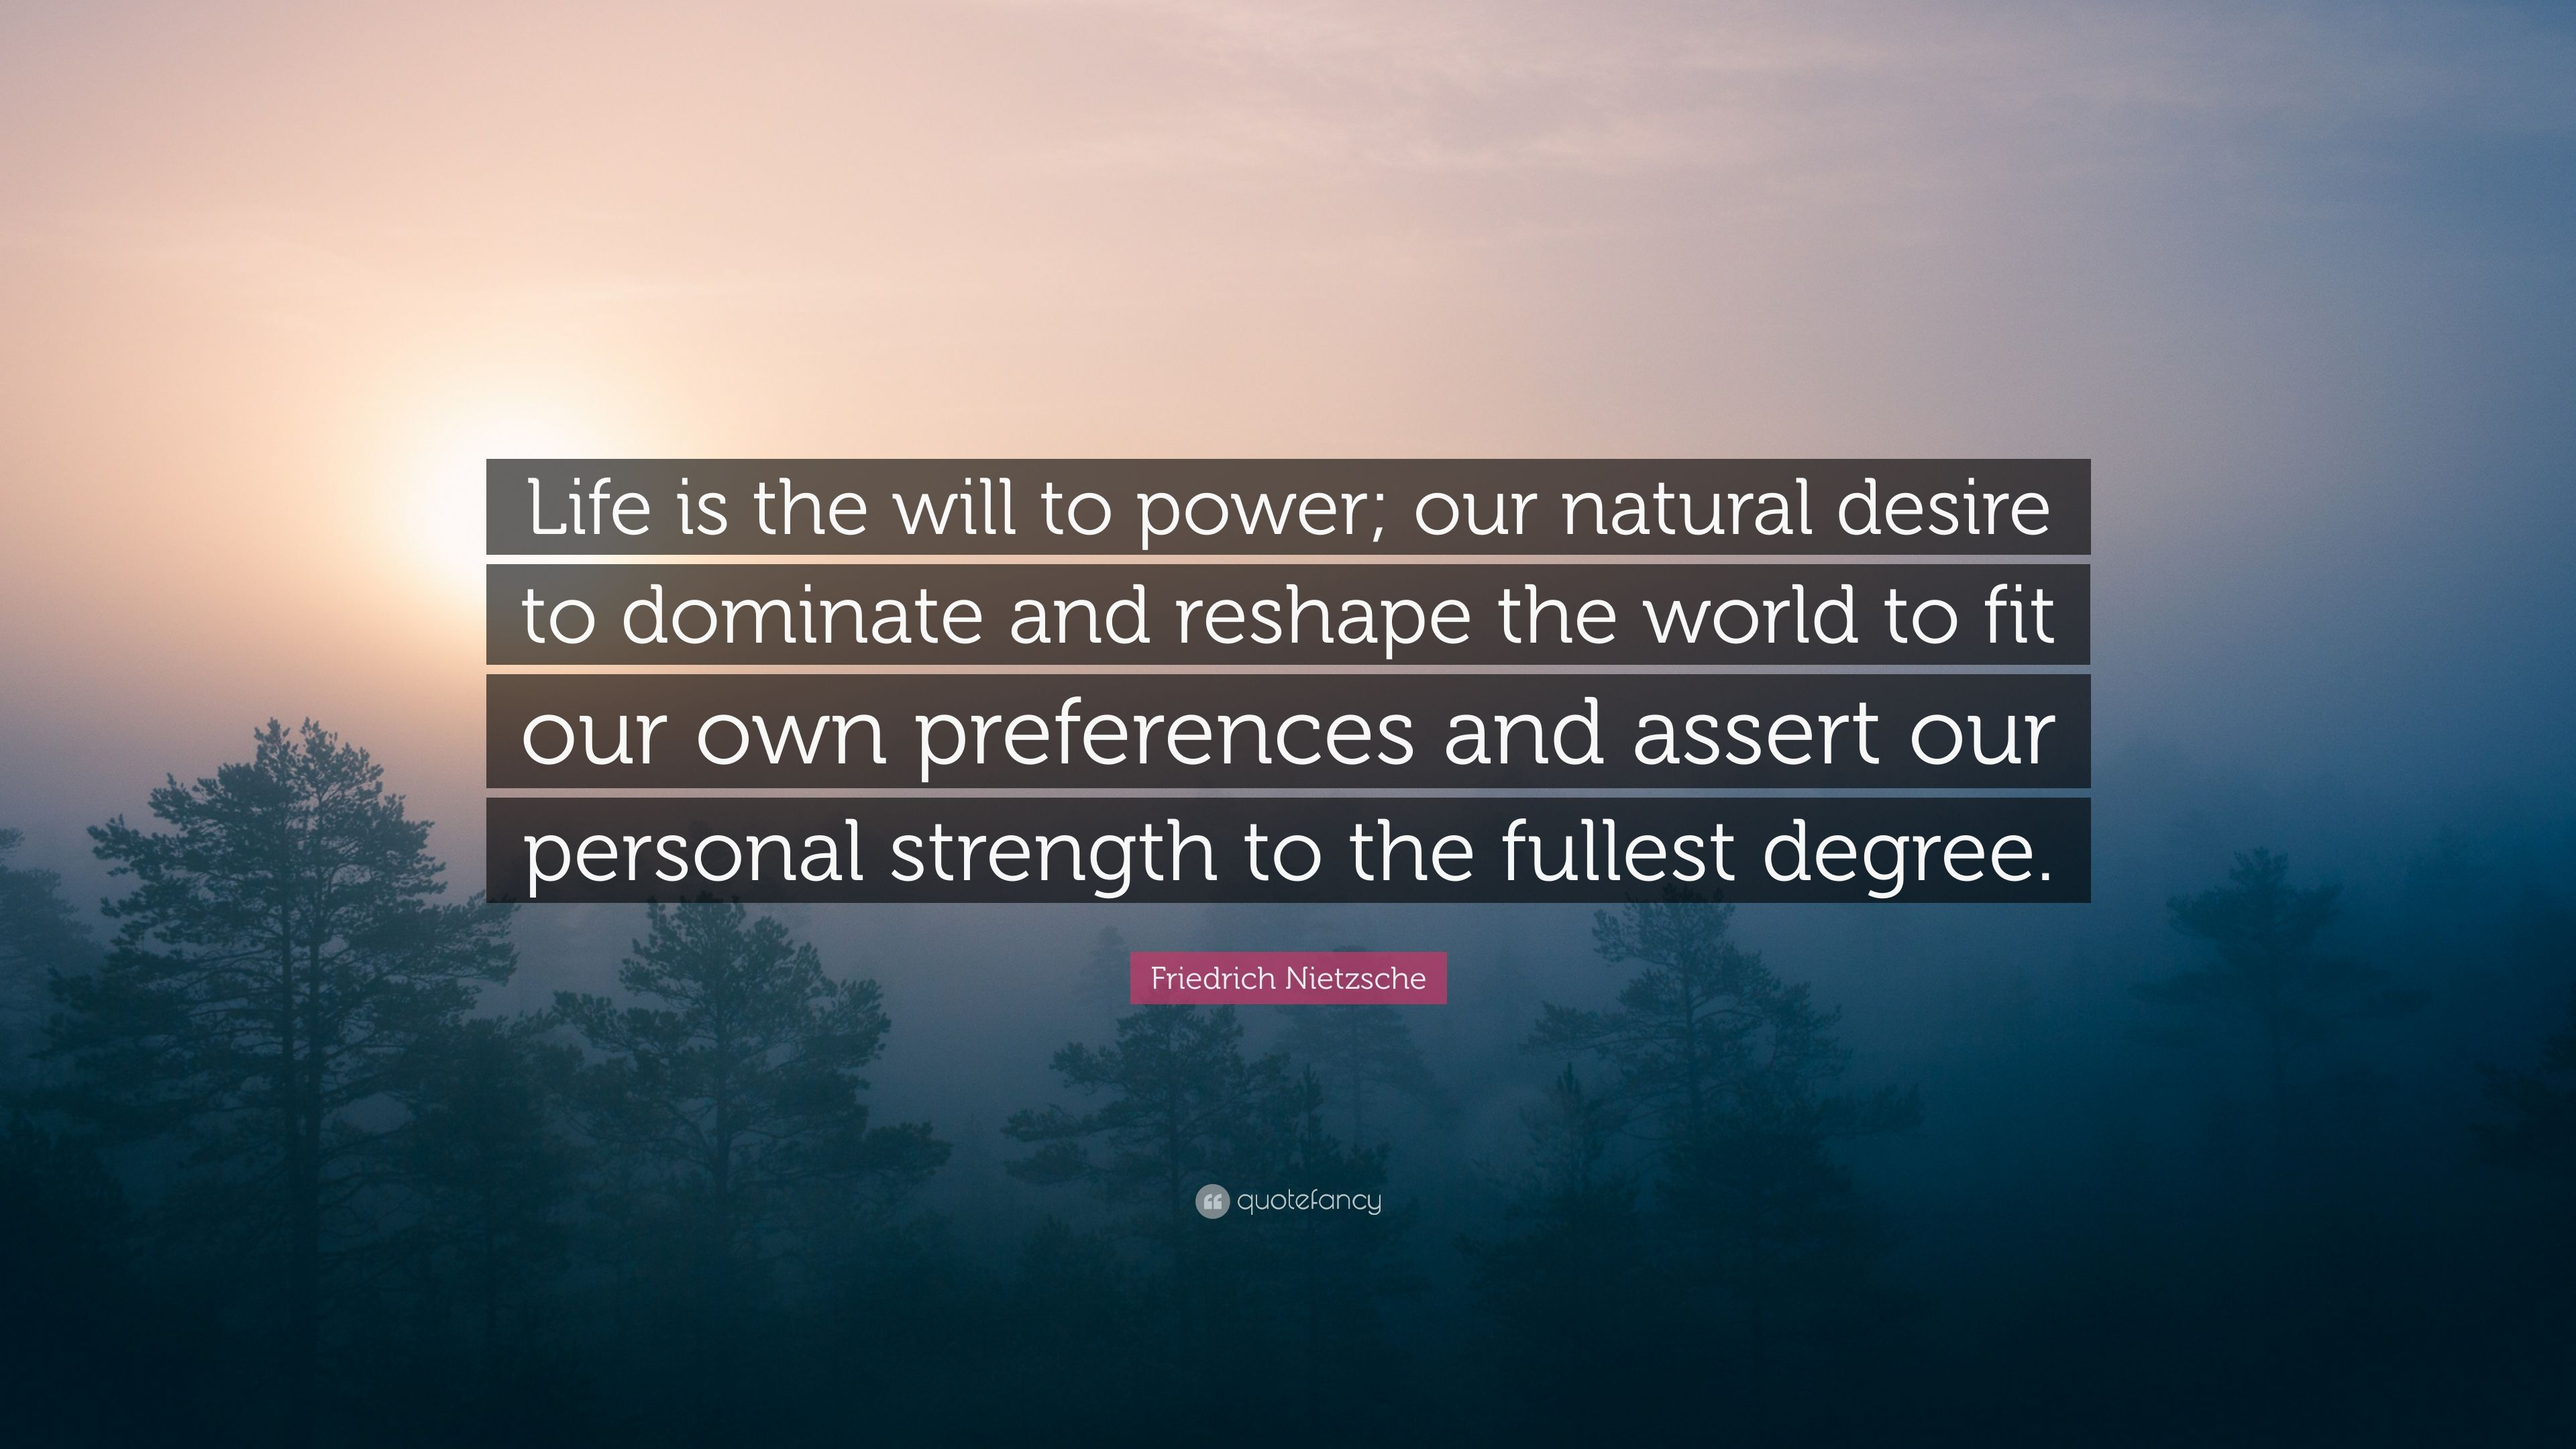 Friedrich Nietzsche Quote Life Is The Will To Power Our Natural